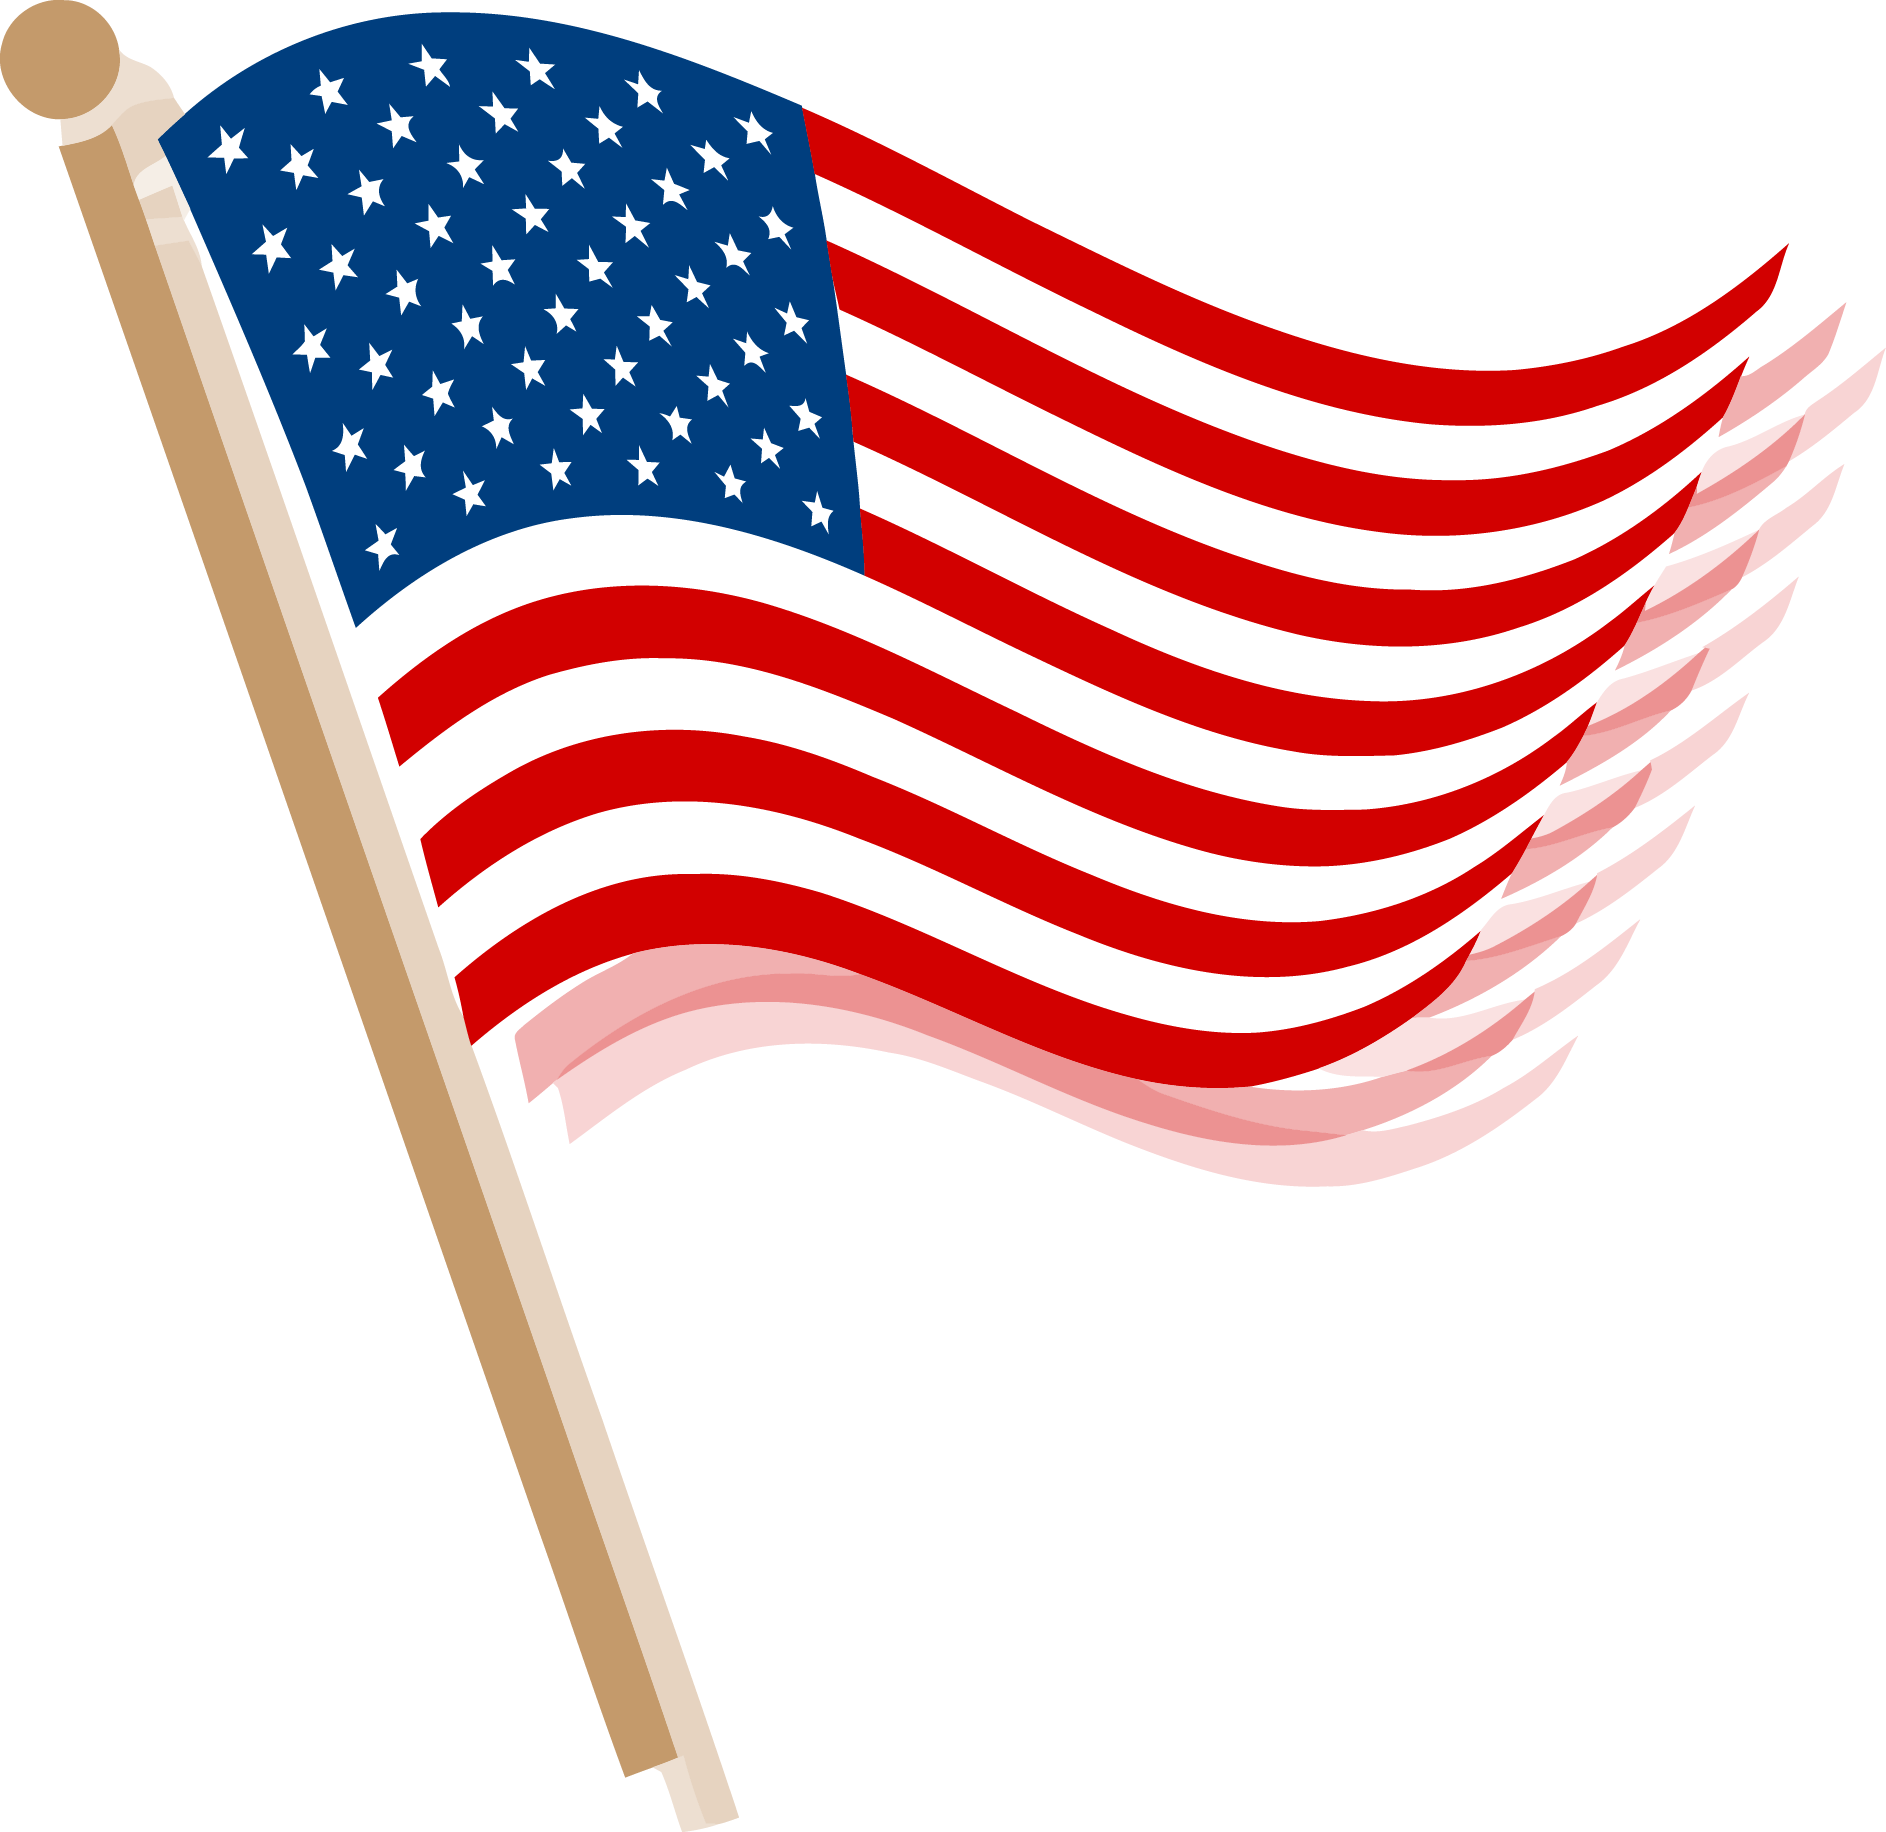 United states clipart free image royalty free download Flag of the United States Clip art - USA 1886*1832 transprent Png ... image royalty free download